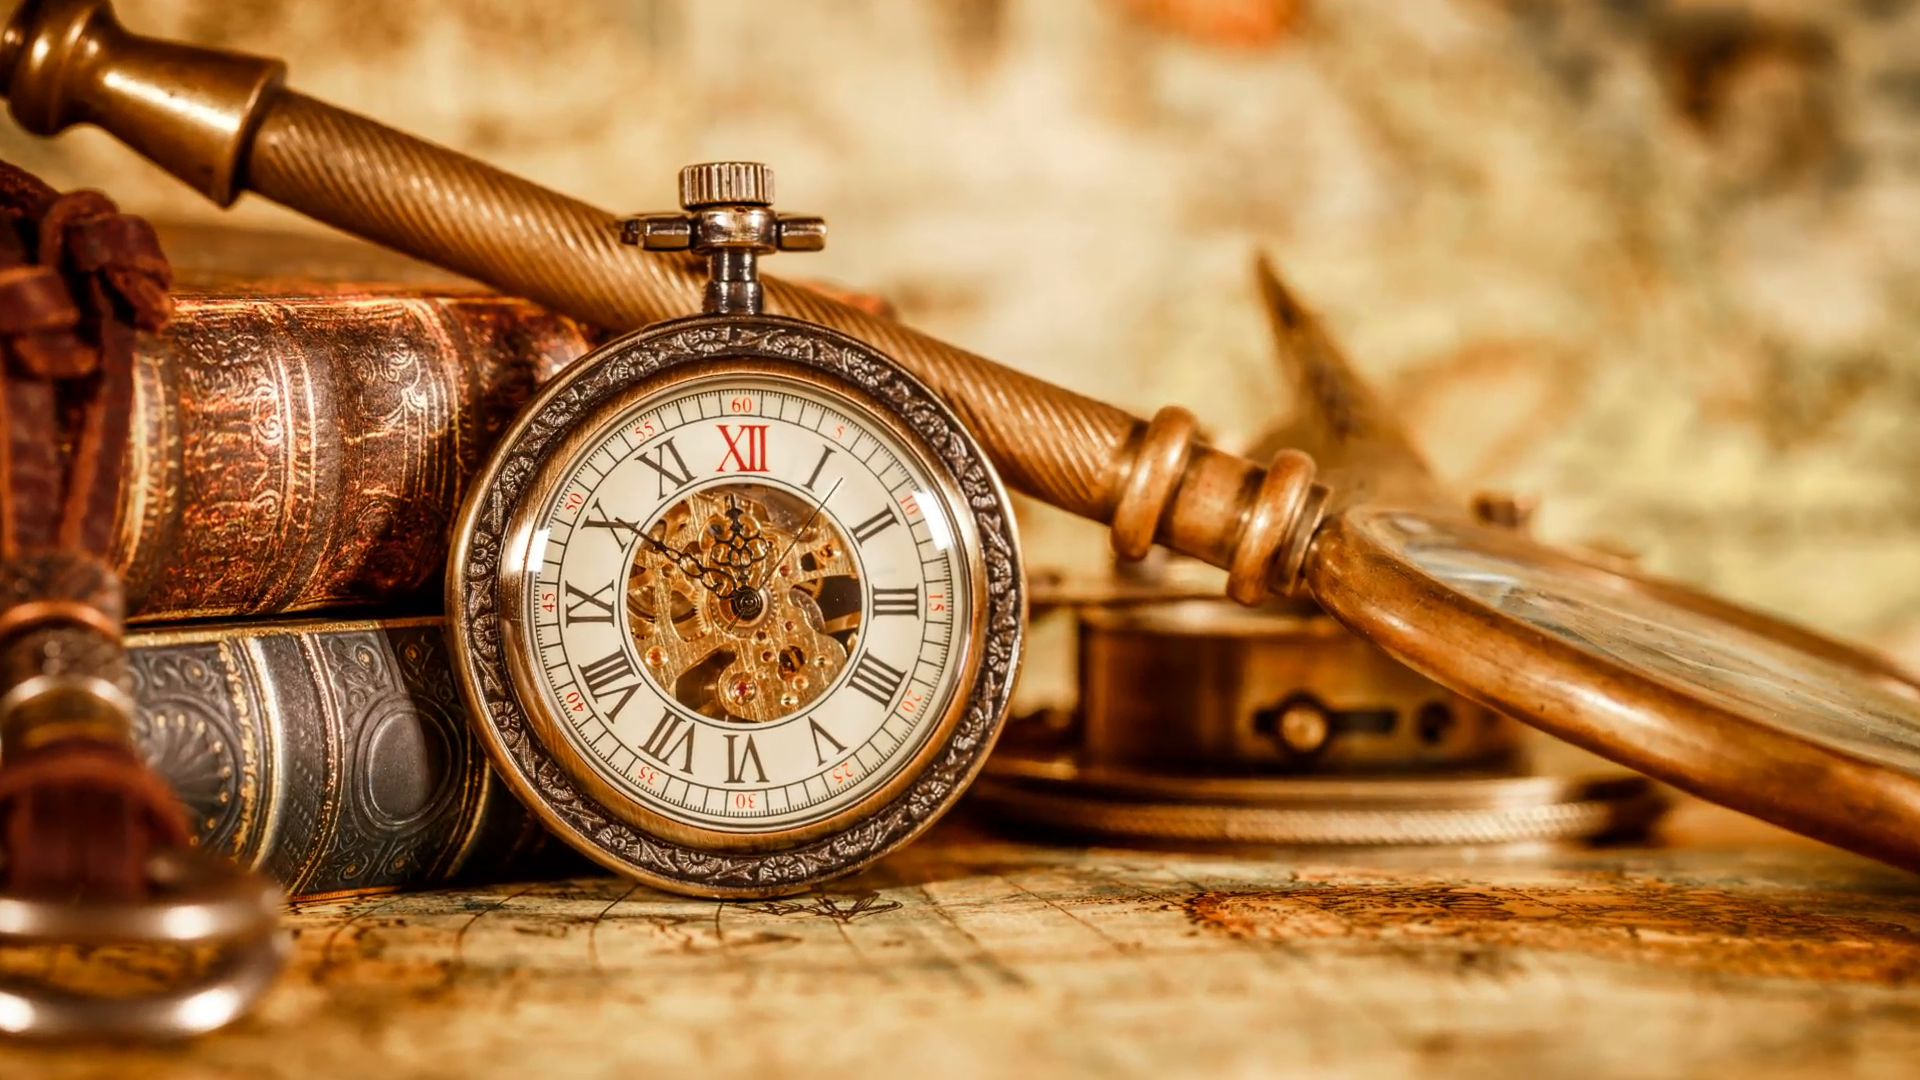 Accurate antique valuations in Cheshire